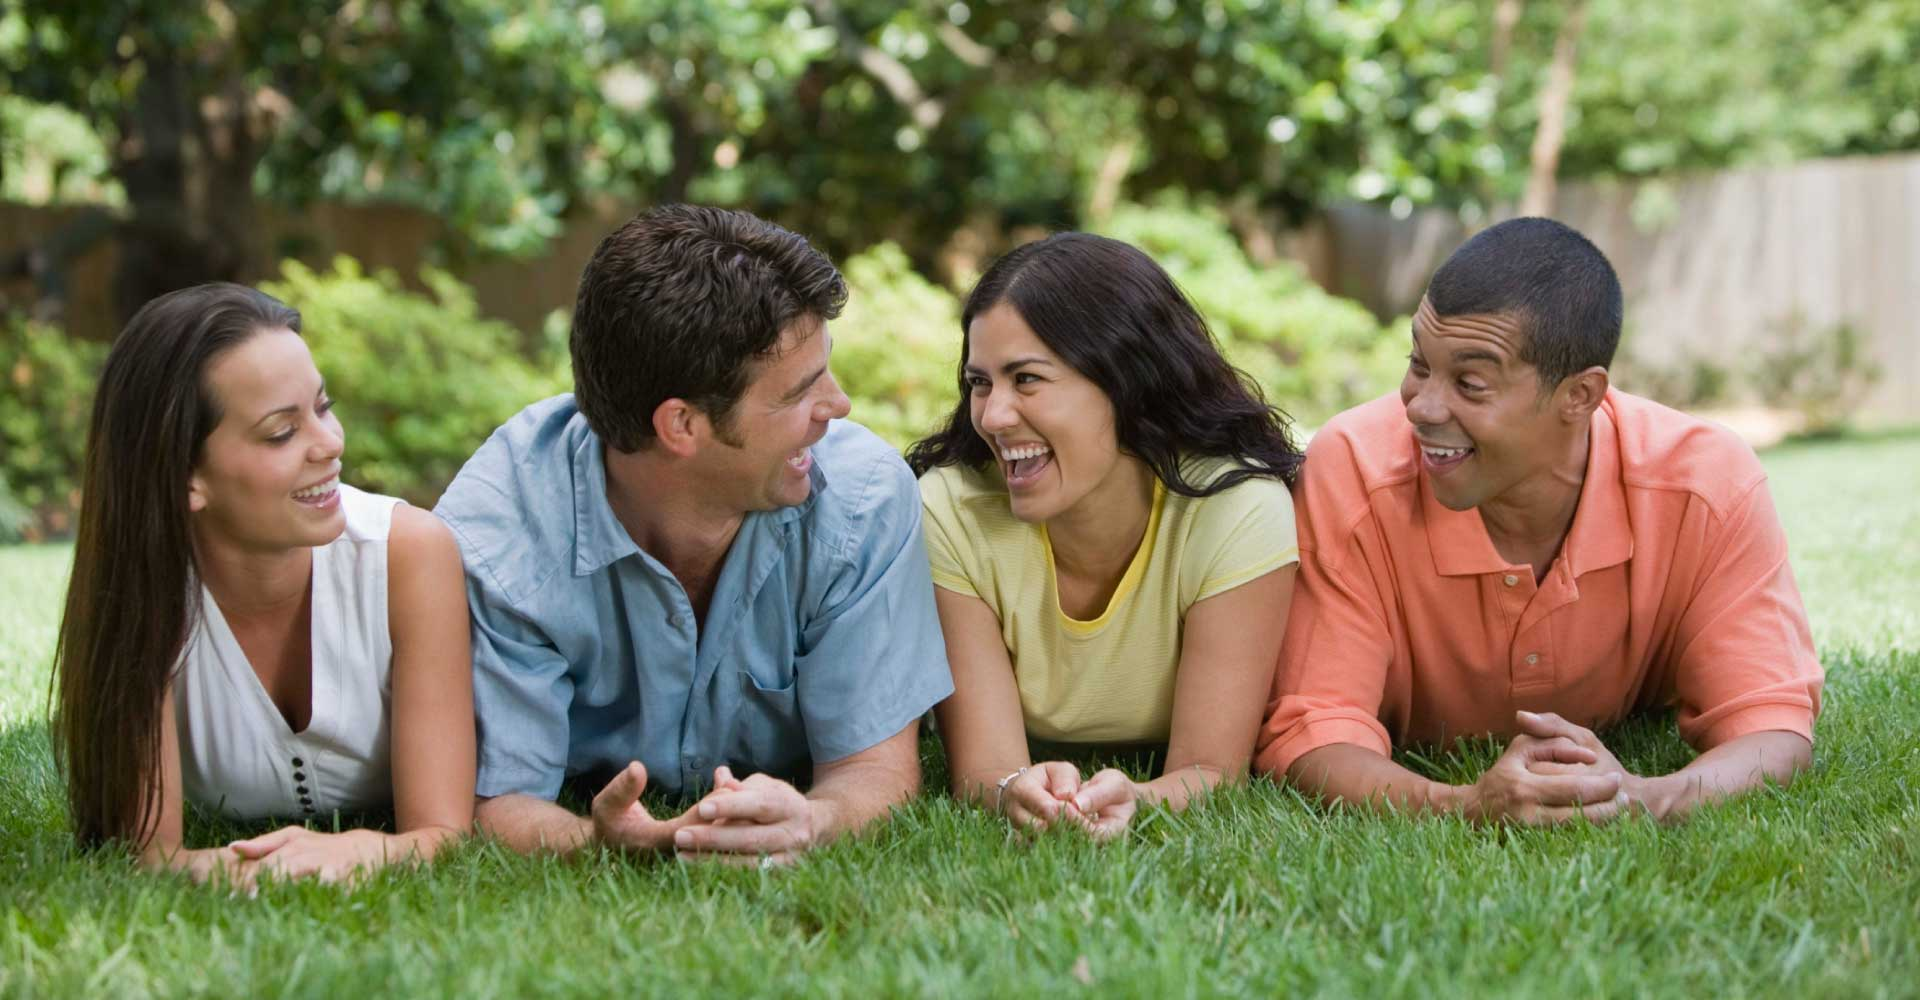 group of four smiling friends next to each other on their elbows in the grass